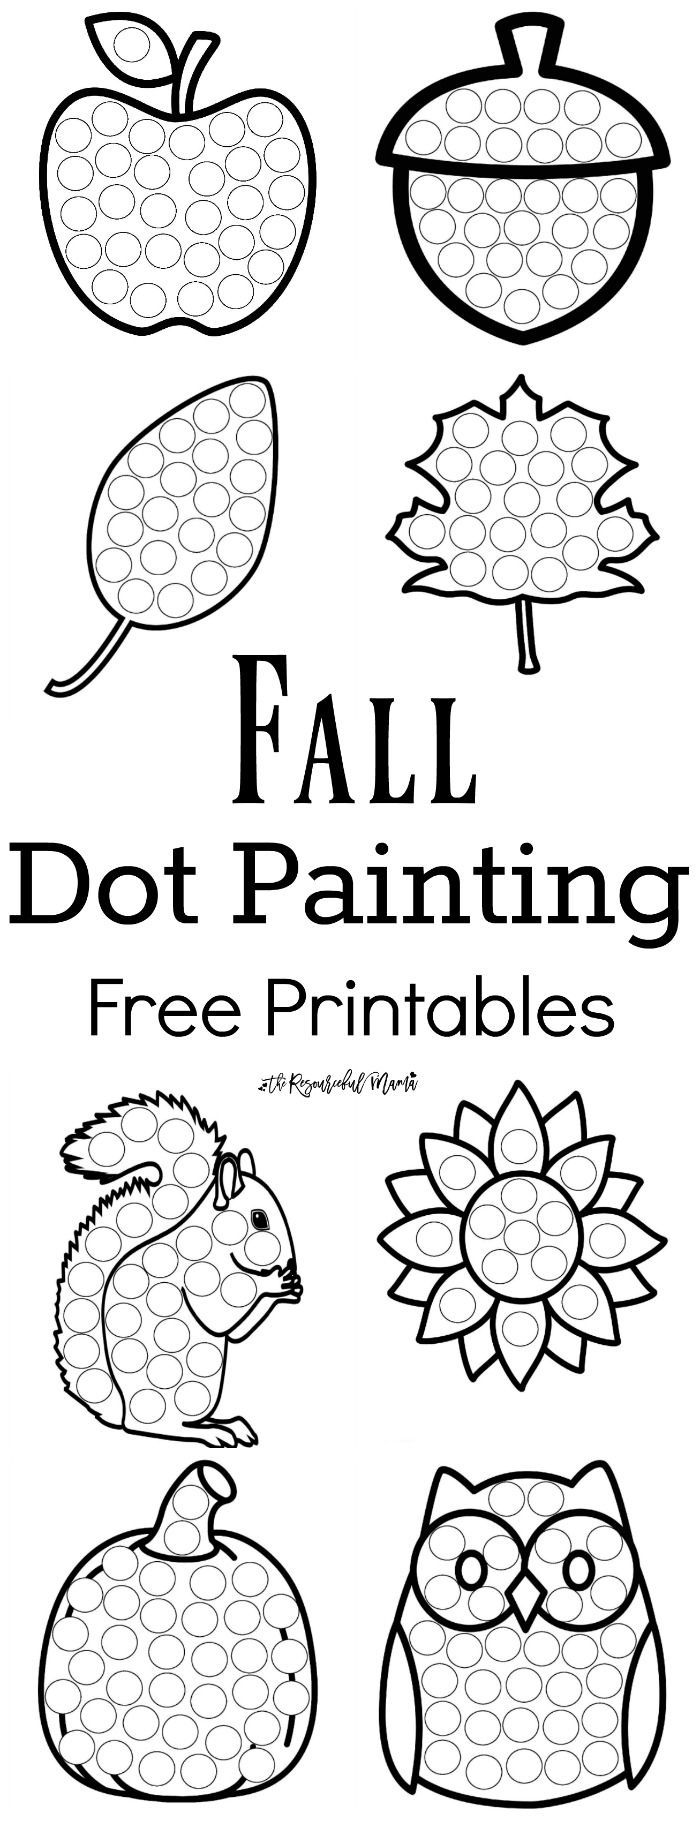 fall dot painting free printables - Painting Worksheets For Kindergarten